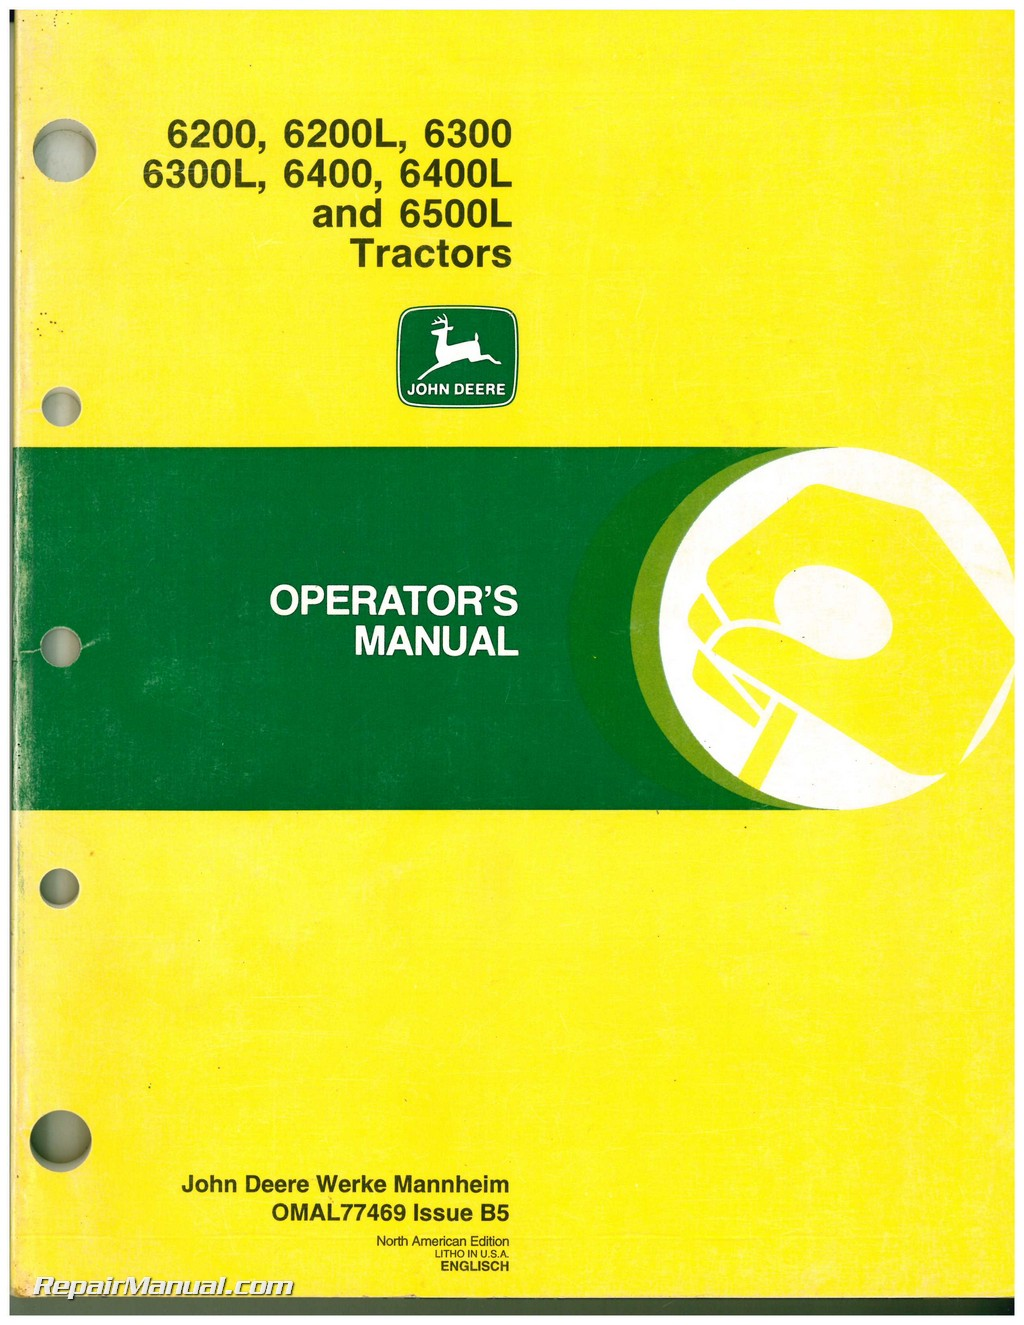 Jd 6300 Wiring Diagram Schemes John Deere 4020 Tractor Used 6200 6200l 6300l 6400 6400l And 6500l Rh Repairmanual Com 4010